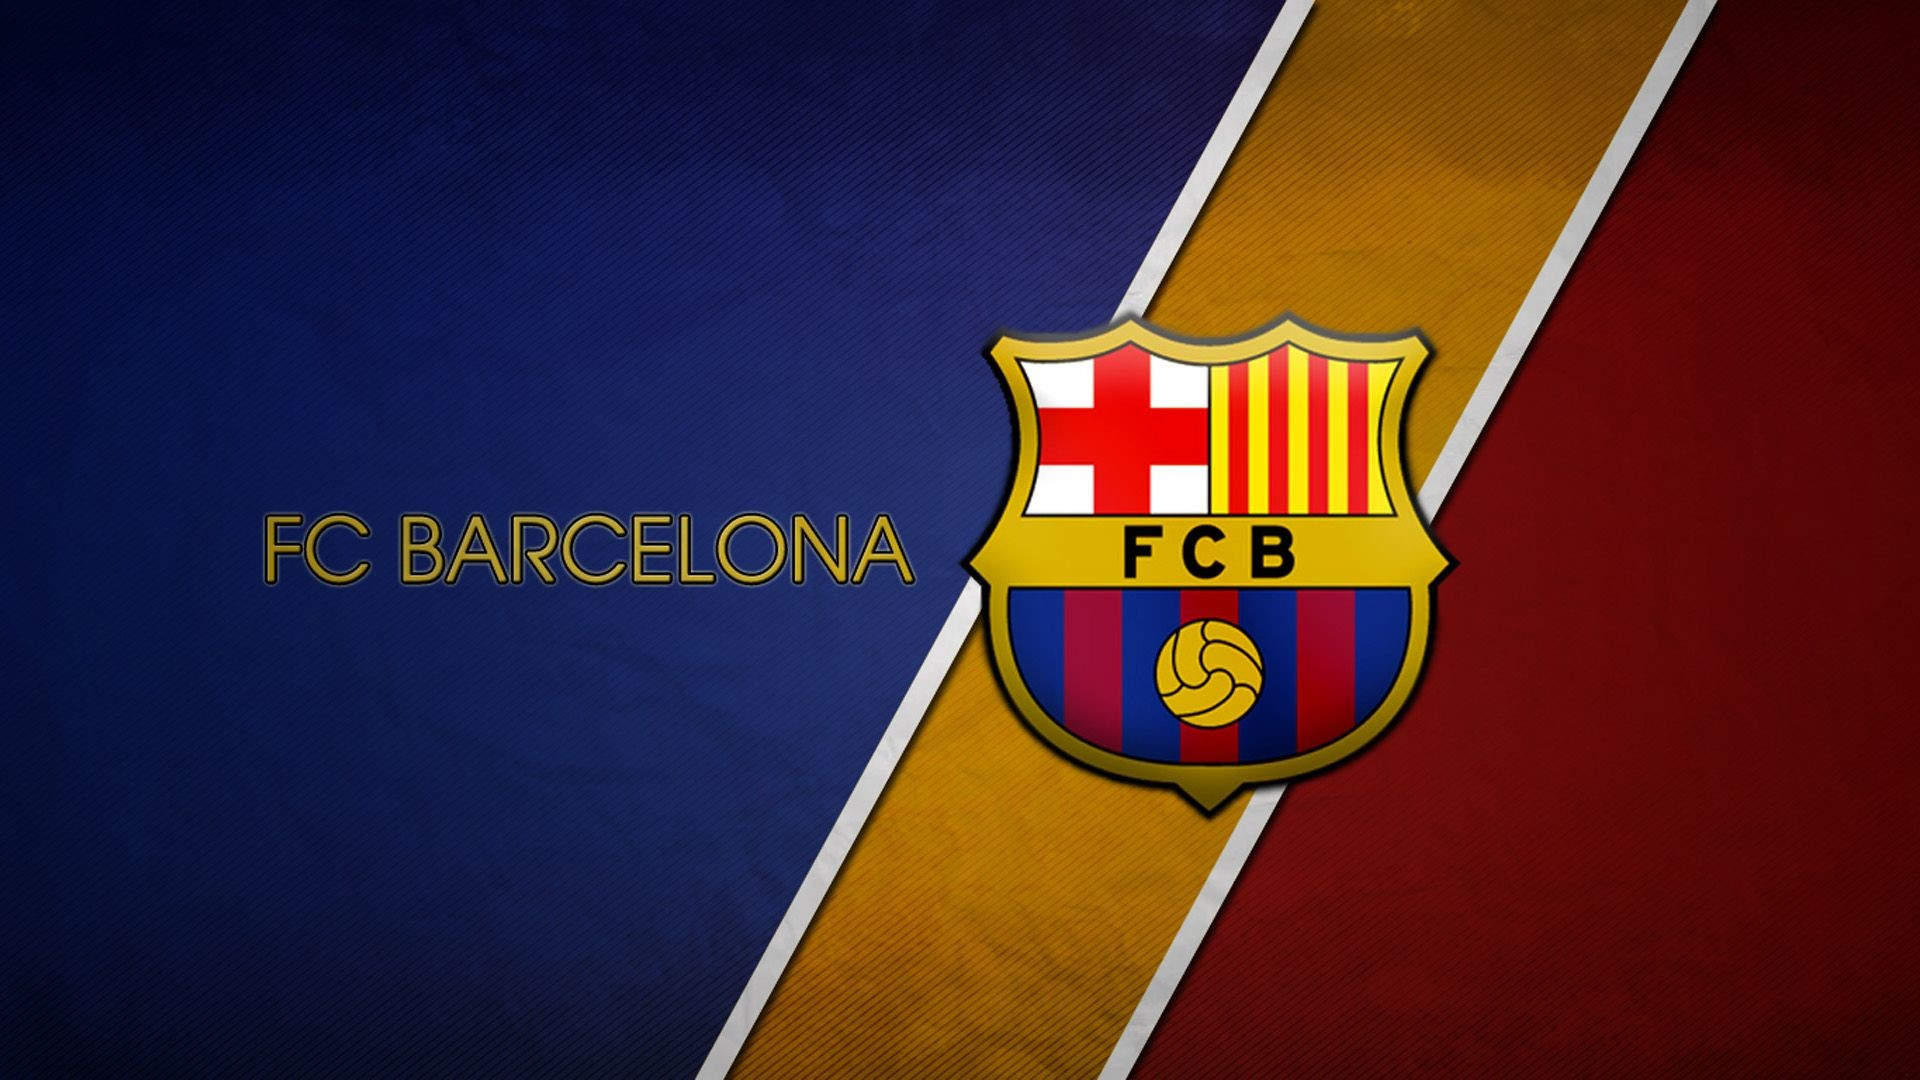 … Cool Fc Barcelona Wallpapers Wallpaper HD 1080p Free Download For  Mobile . You Can Also Upload